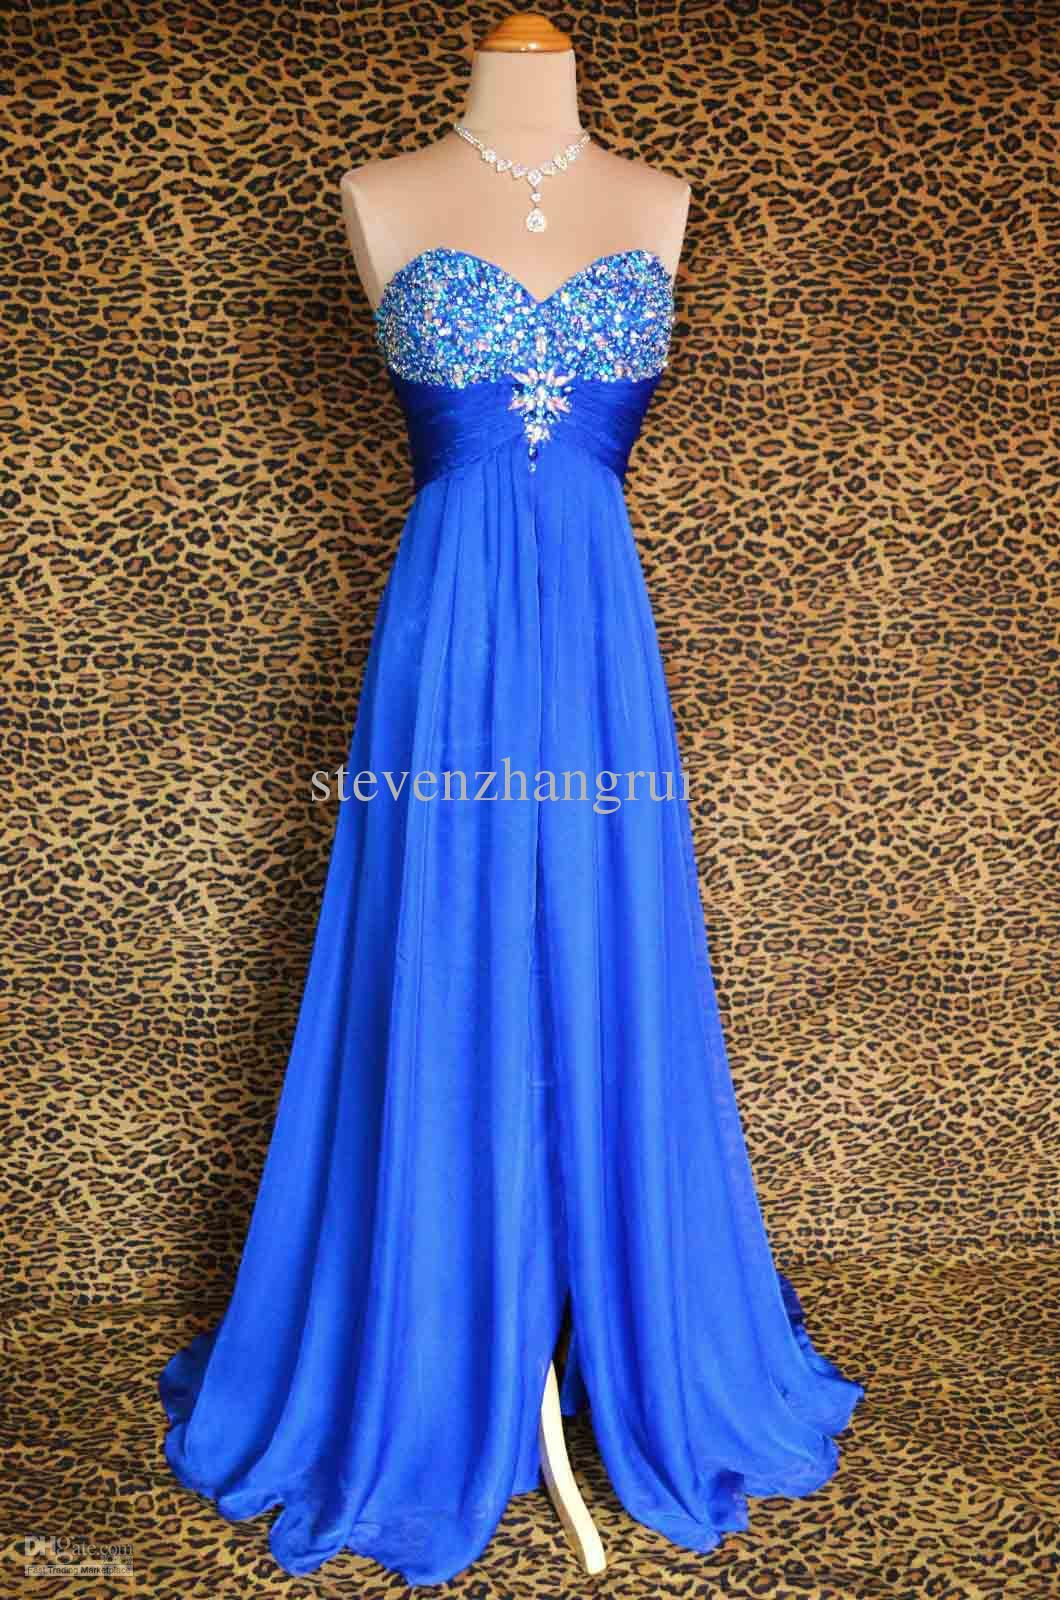 New style sexy royal blue evening dresses aline strapless beaded